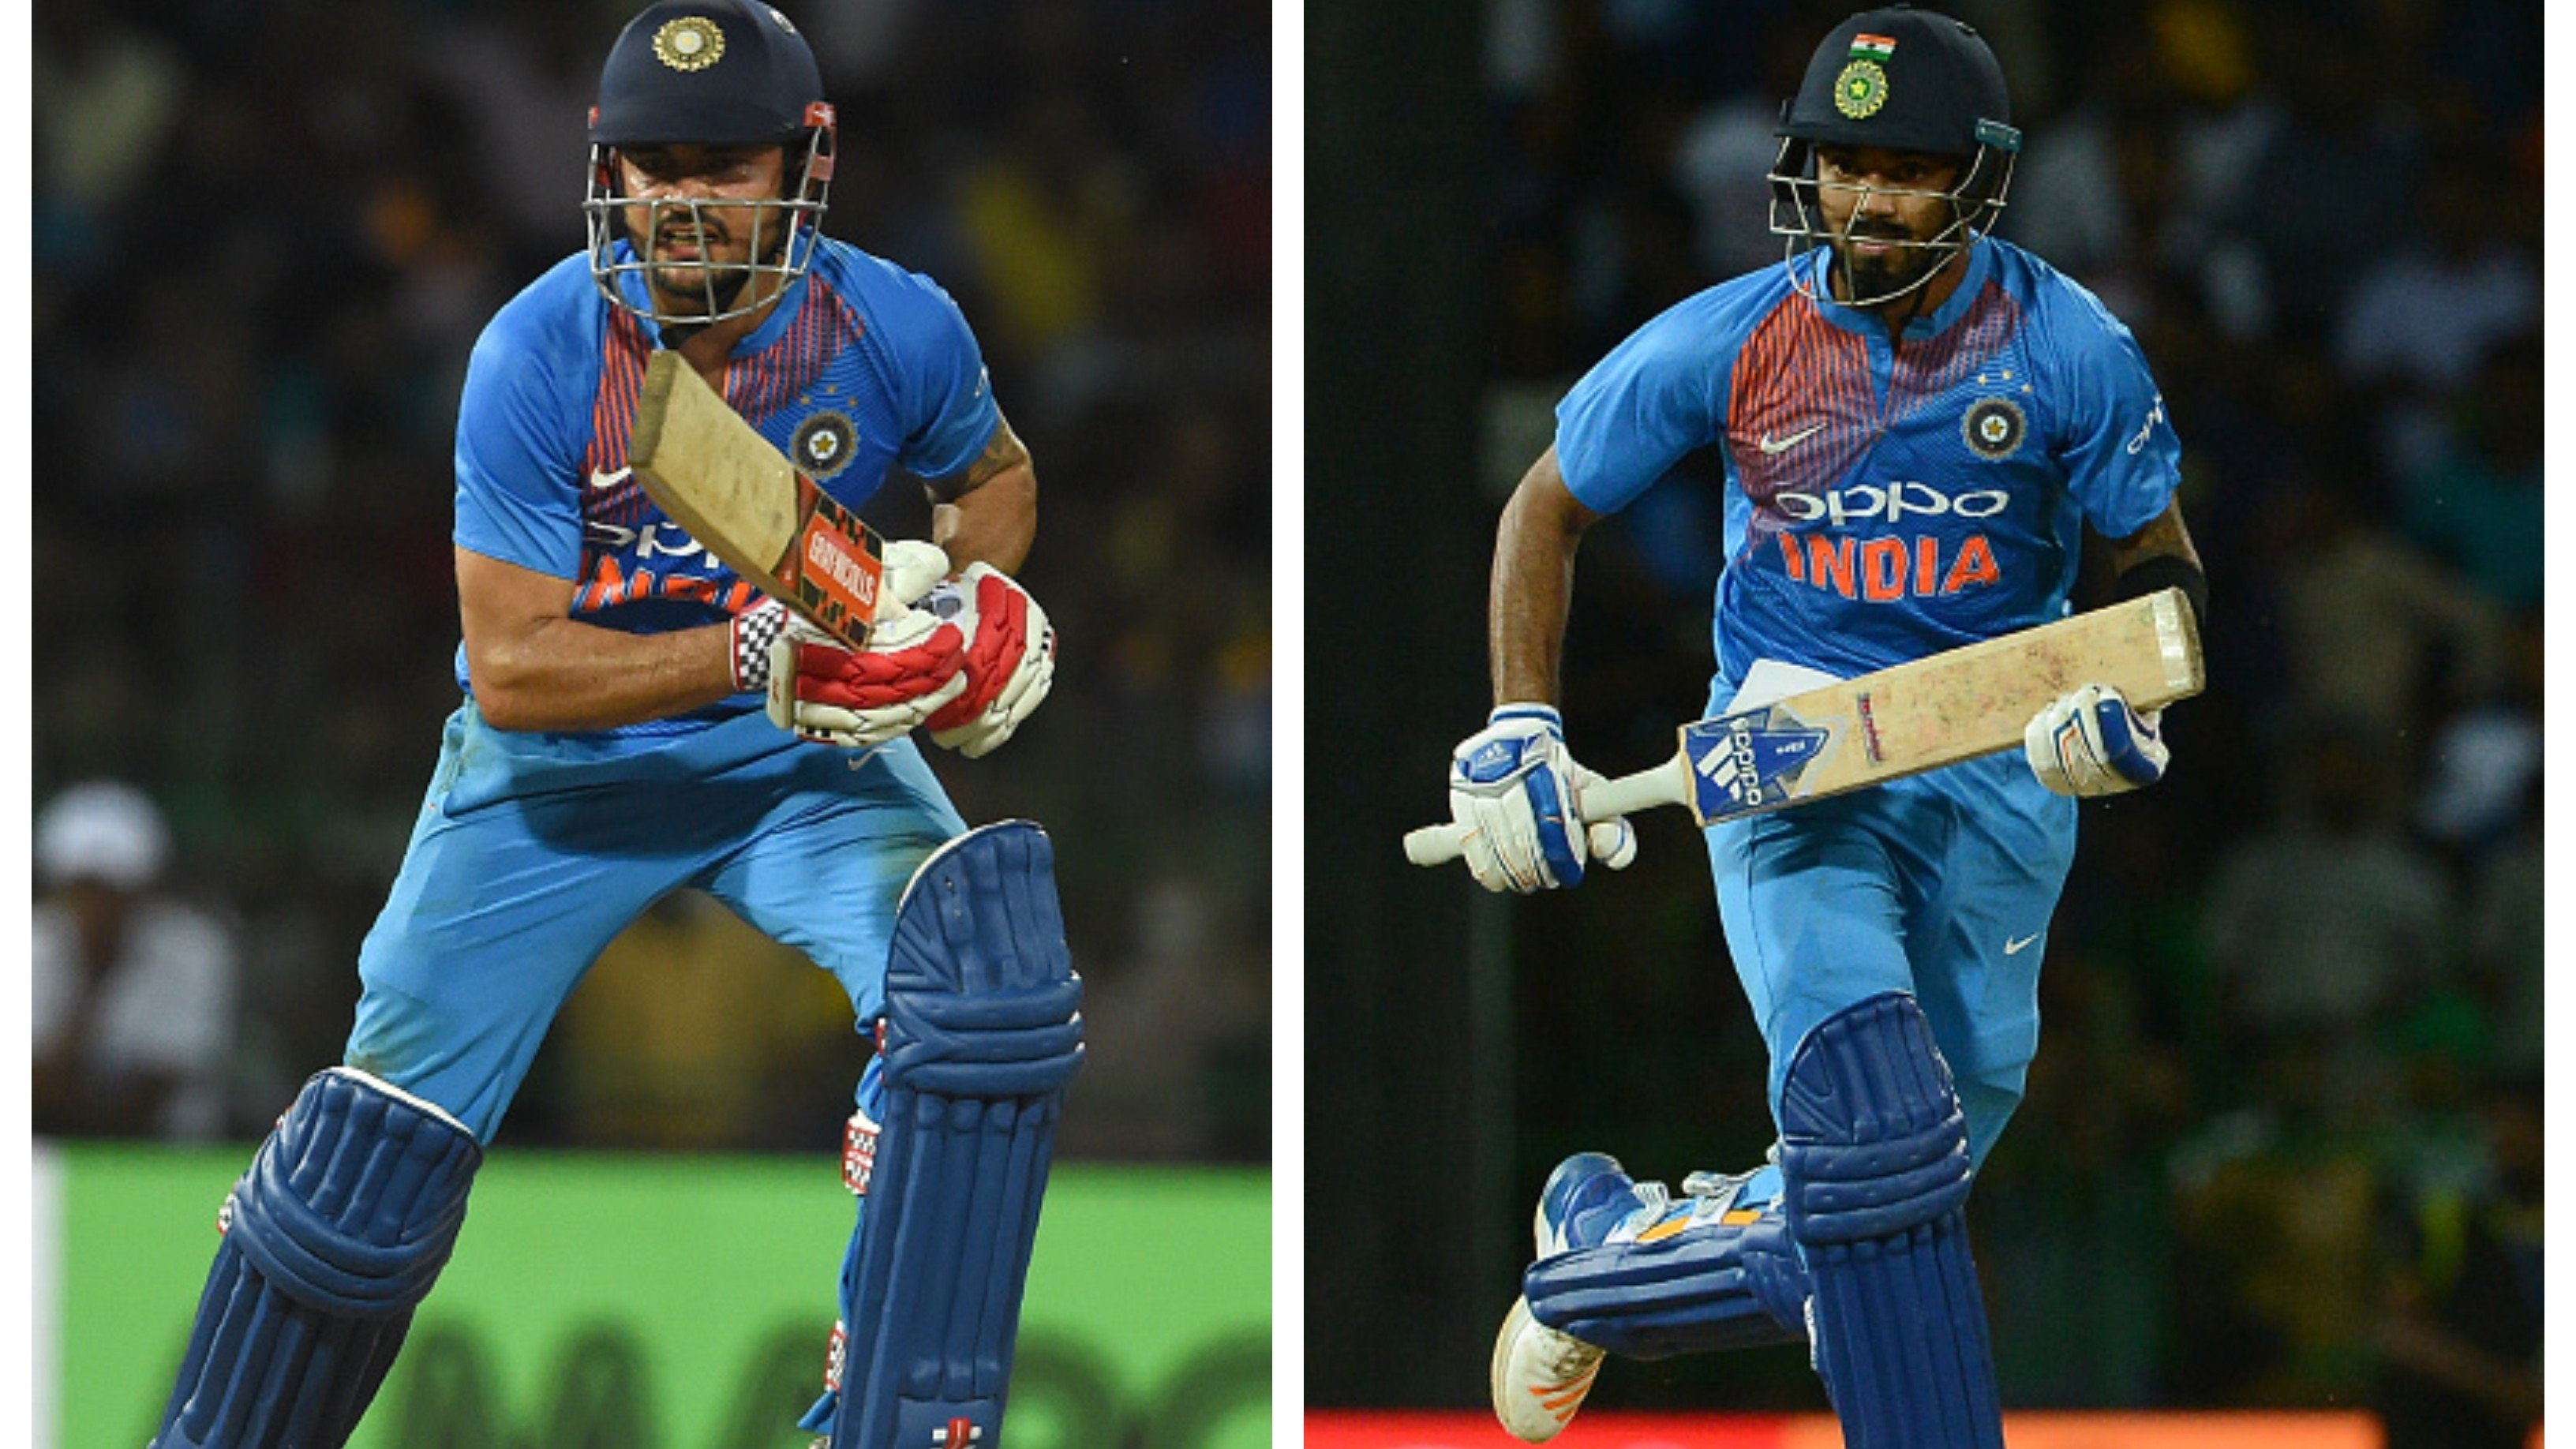 Vijay Hazare Trophy 2019: Manish Pandey to lead Karnataka, KL Rahul named vice-captain